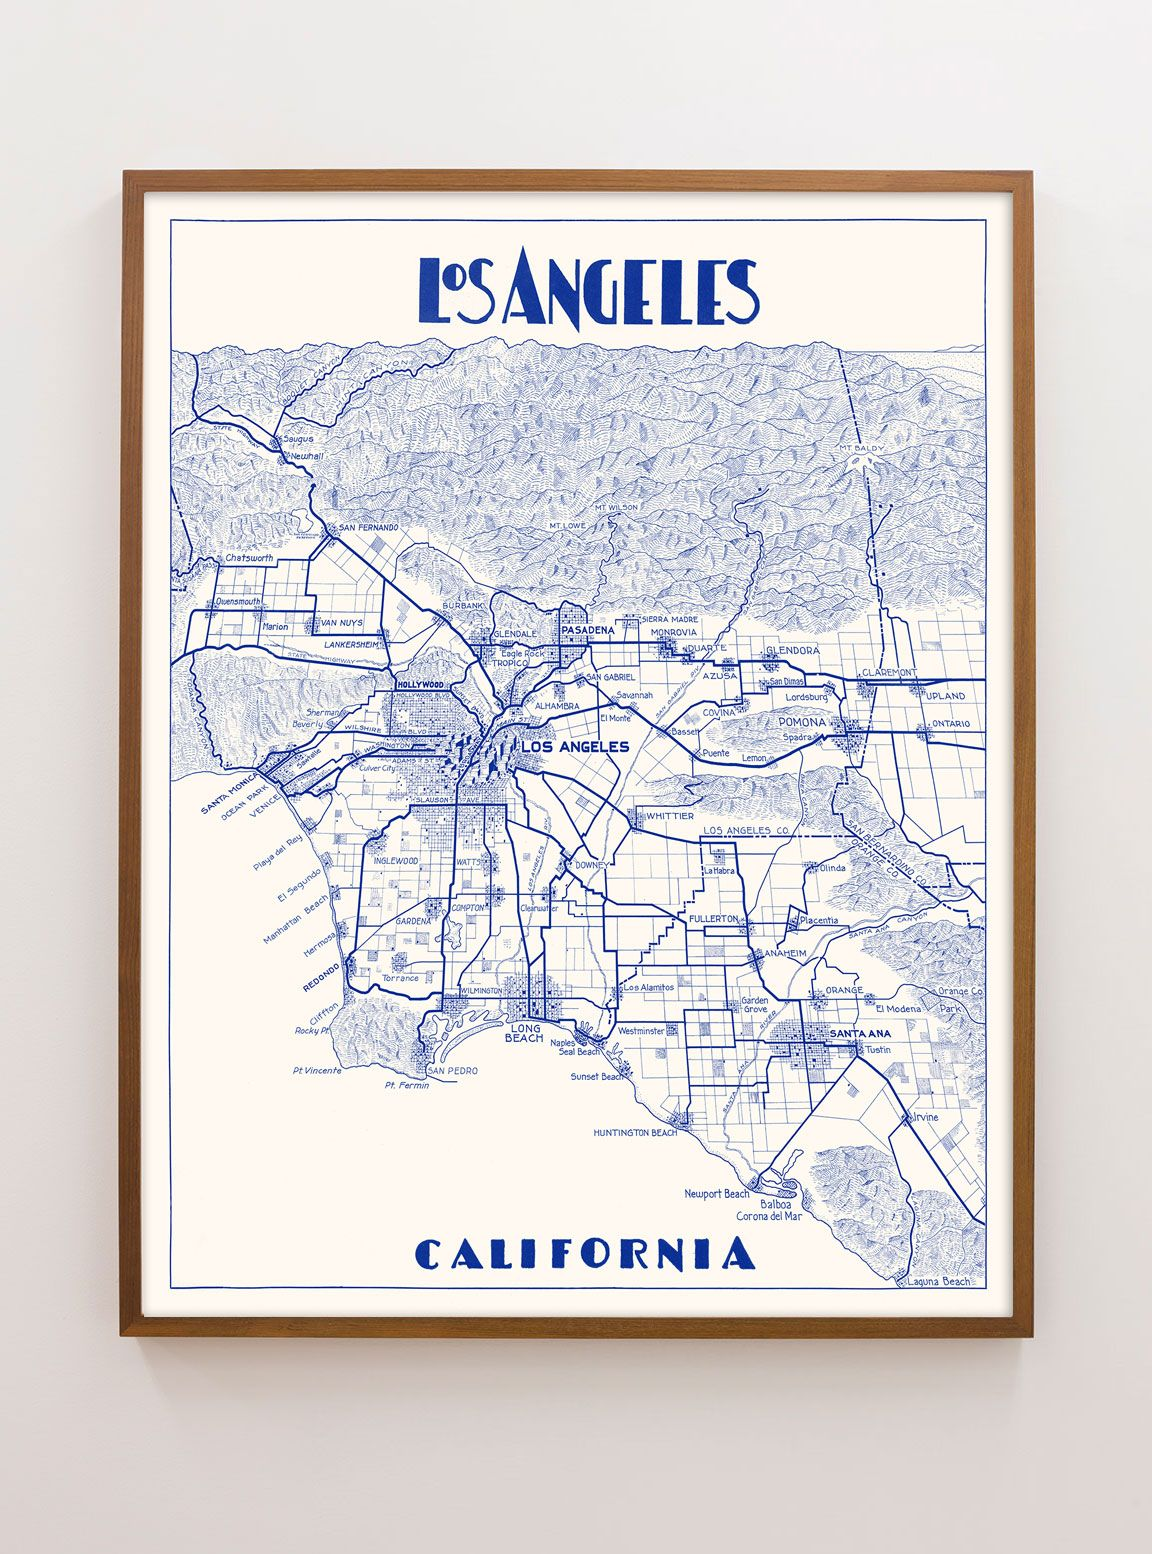 photo about Printable Map of Los Angeles named Typical Los Angeles Map (portrait variation) - Colour variances